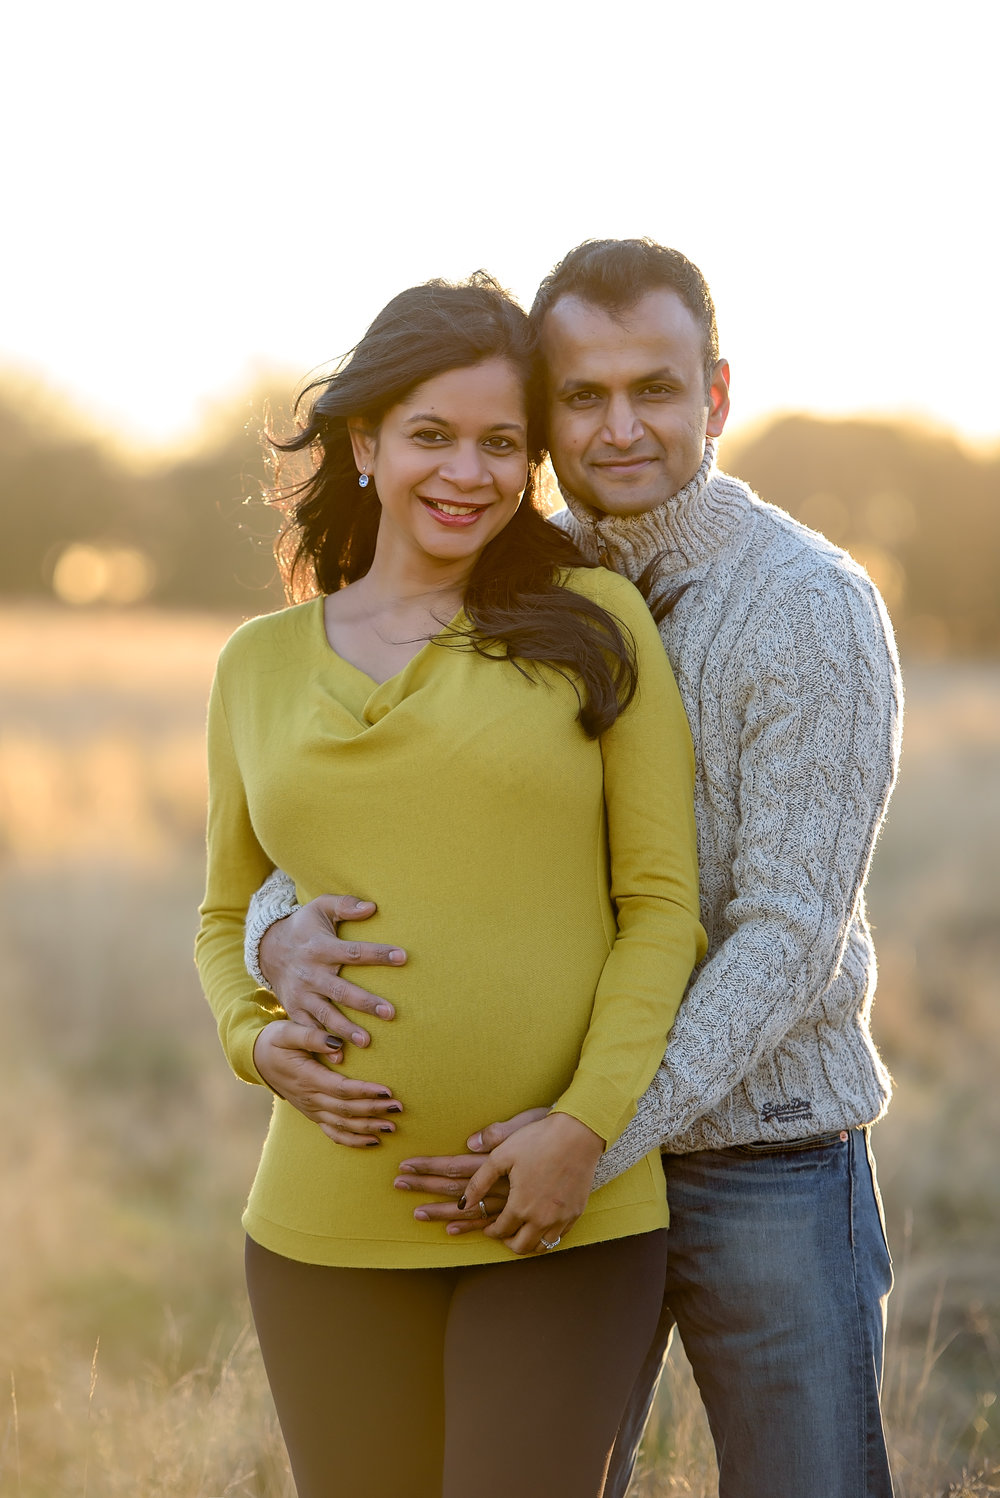 Romantic pregnancy photoshoot